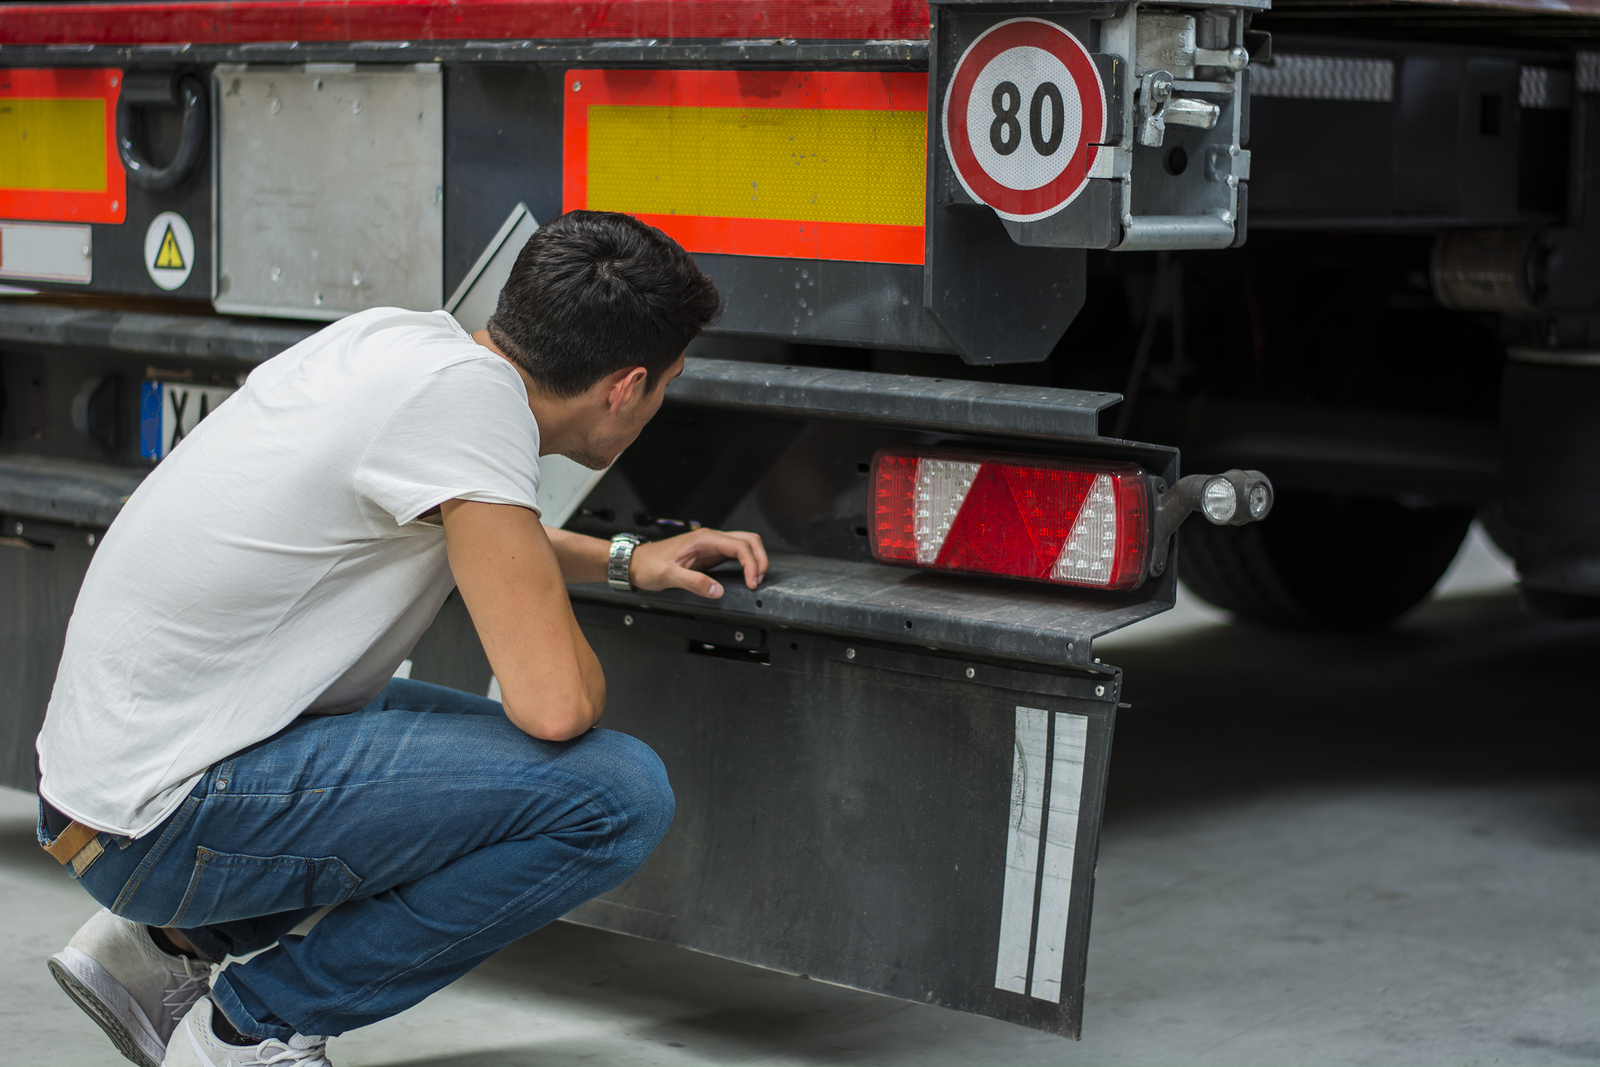 What are Common Causes of Truck Accidents?